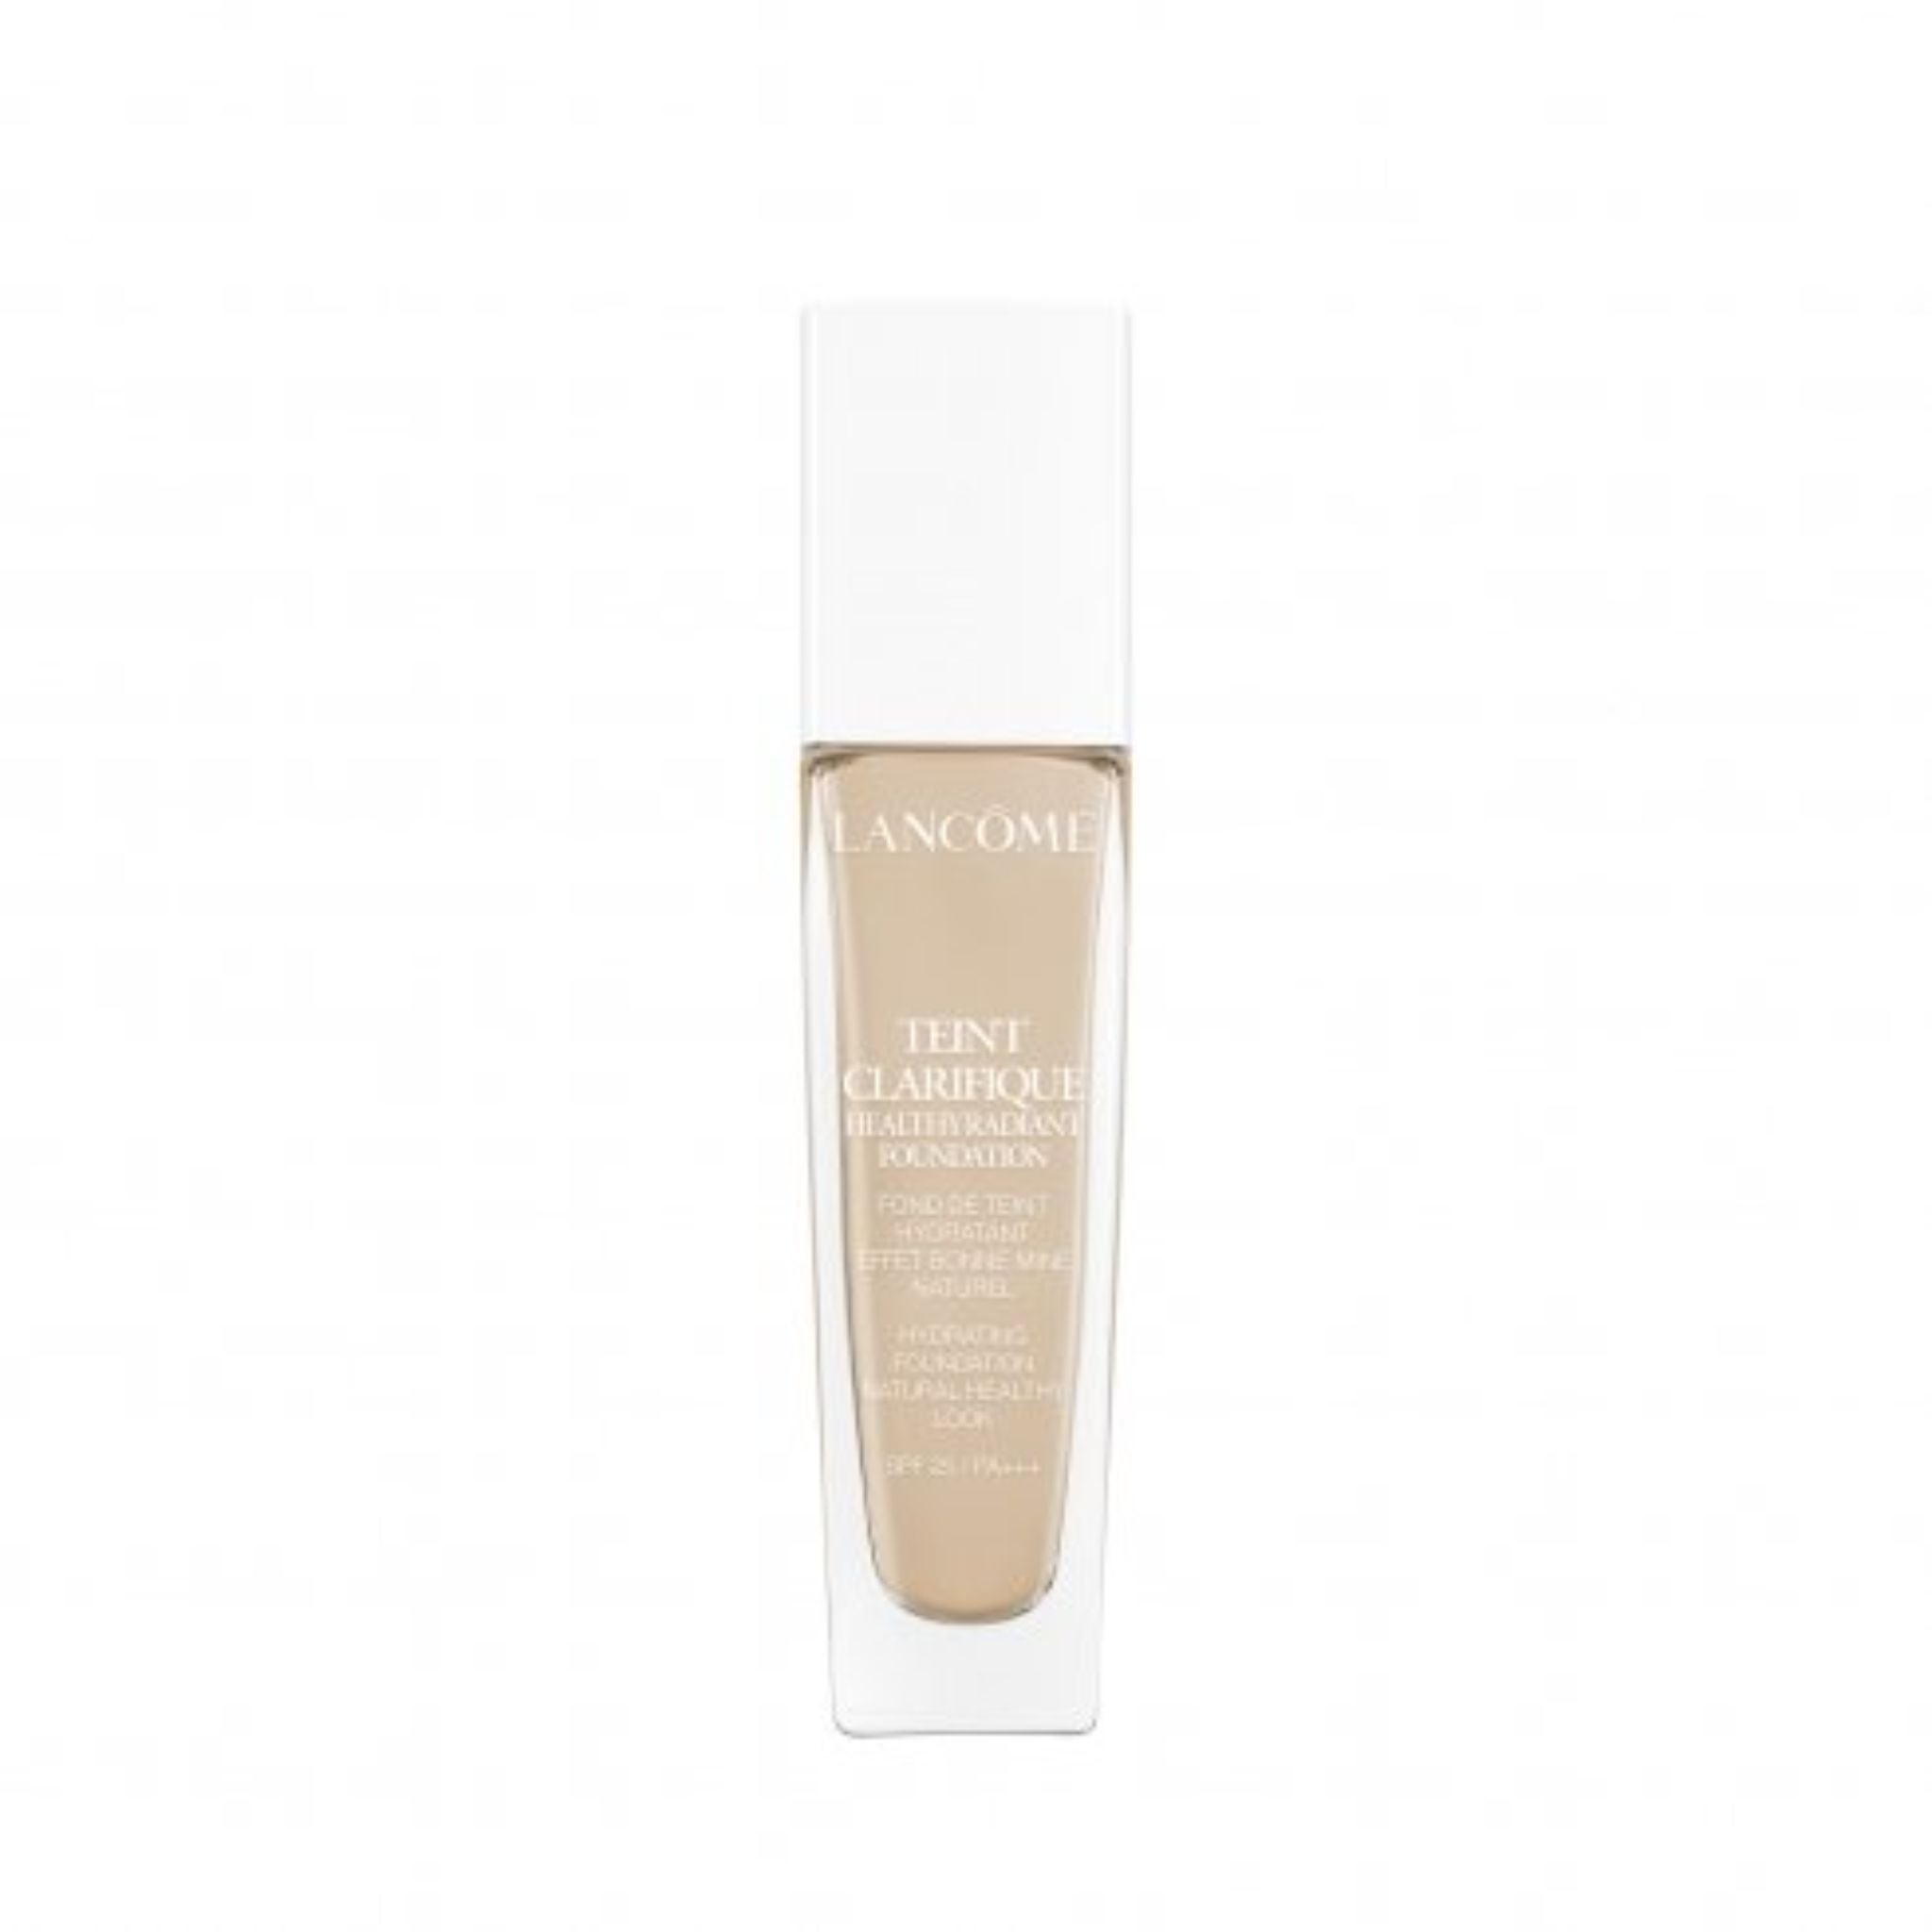 Lancome Teint Clarifique Hydrating Foundation PO-03